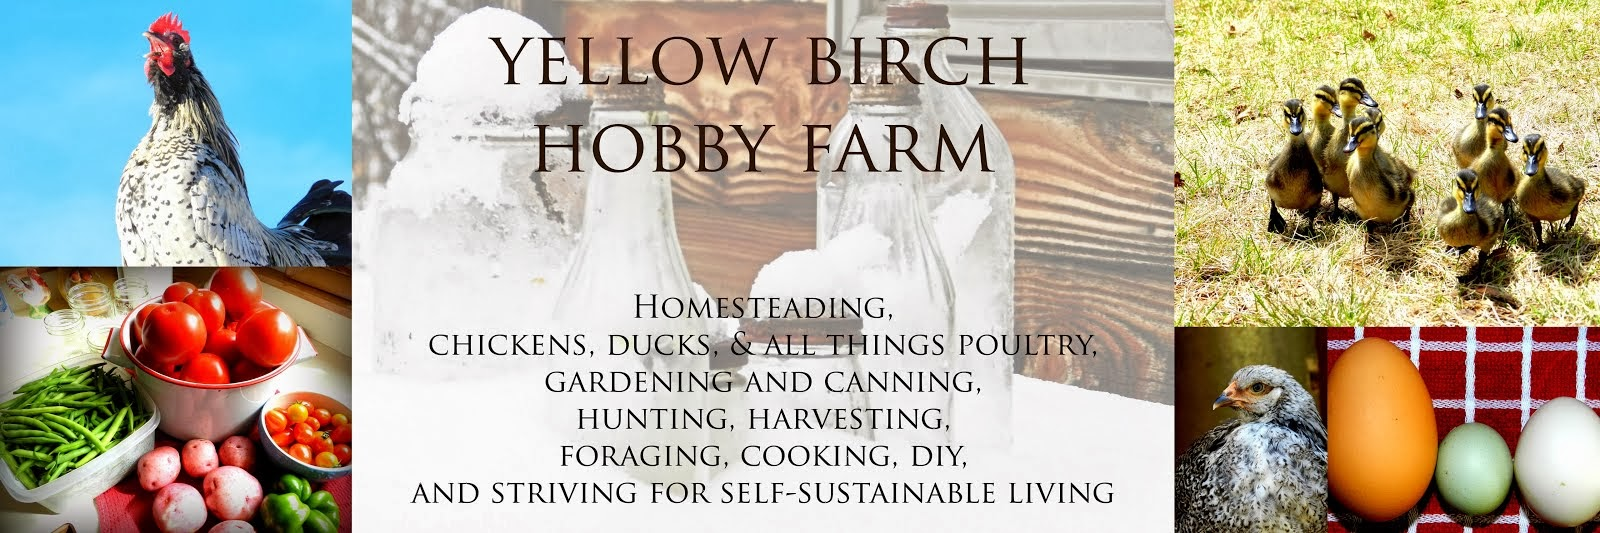 Yellow Birch Hobby Farm